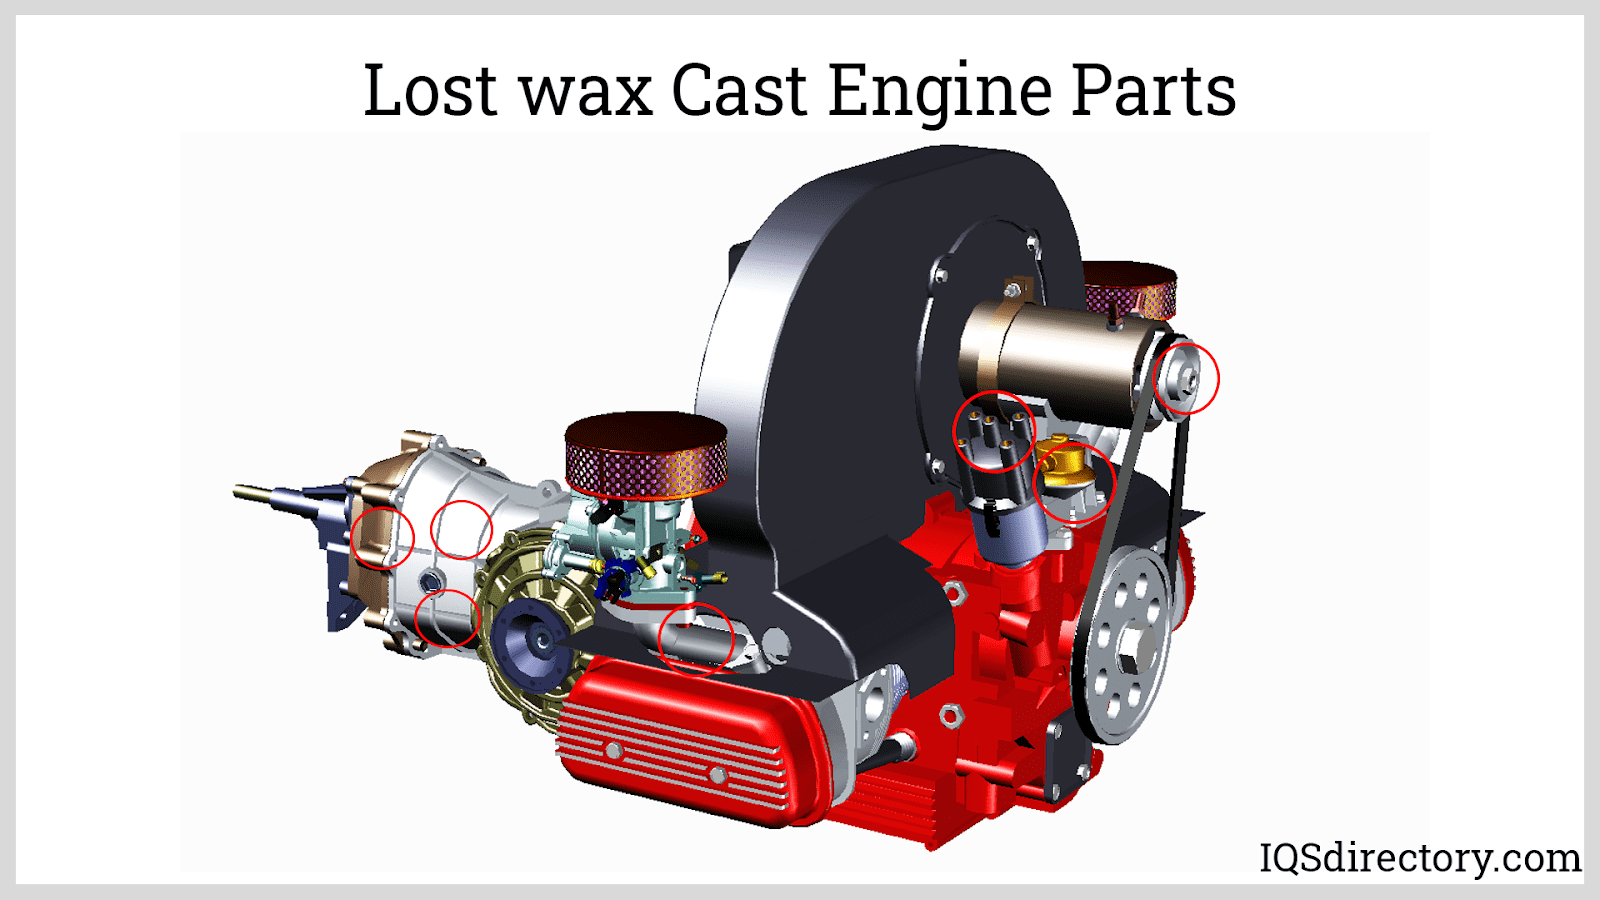 Lost wax Cast Engine Parts